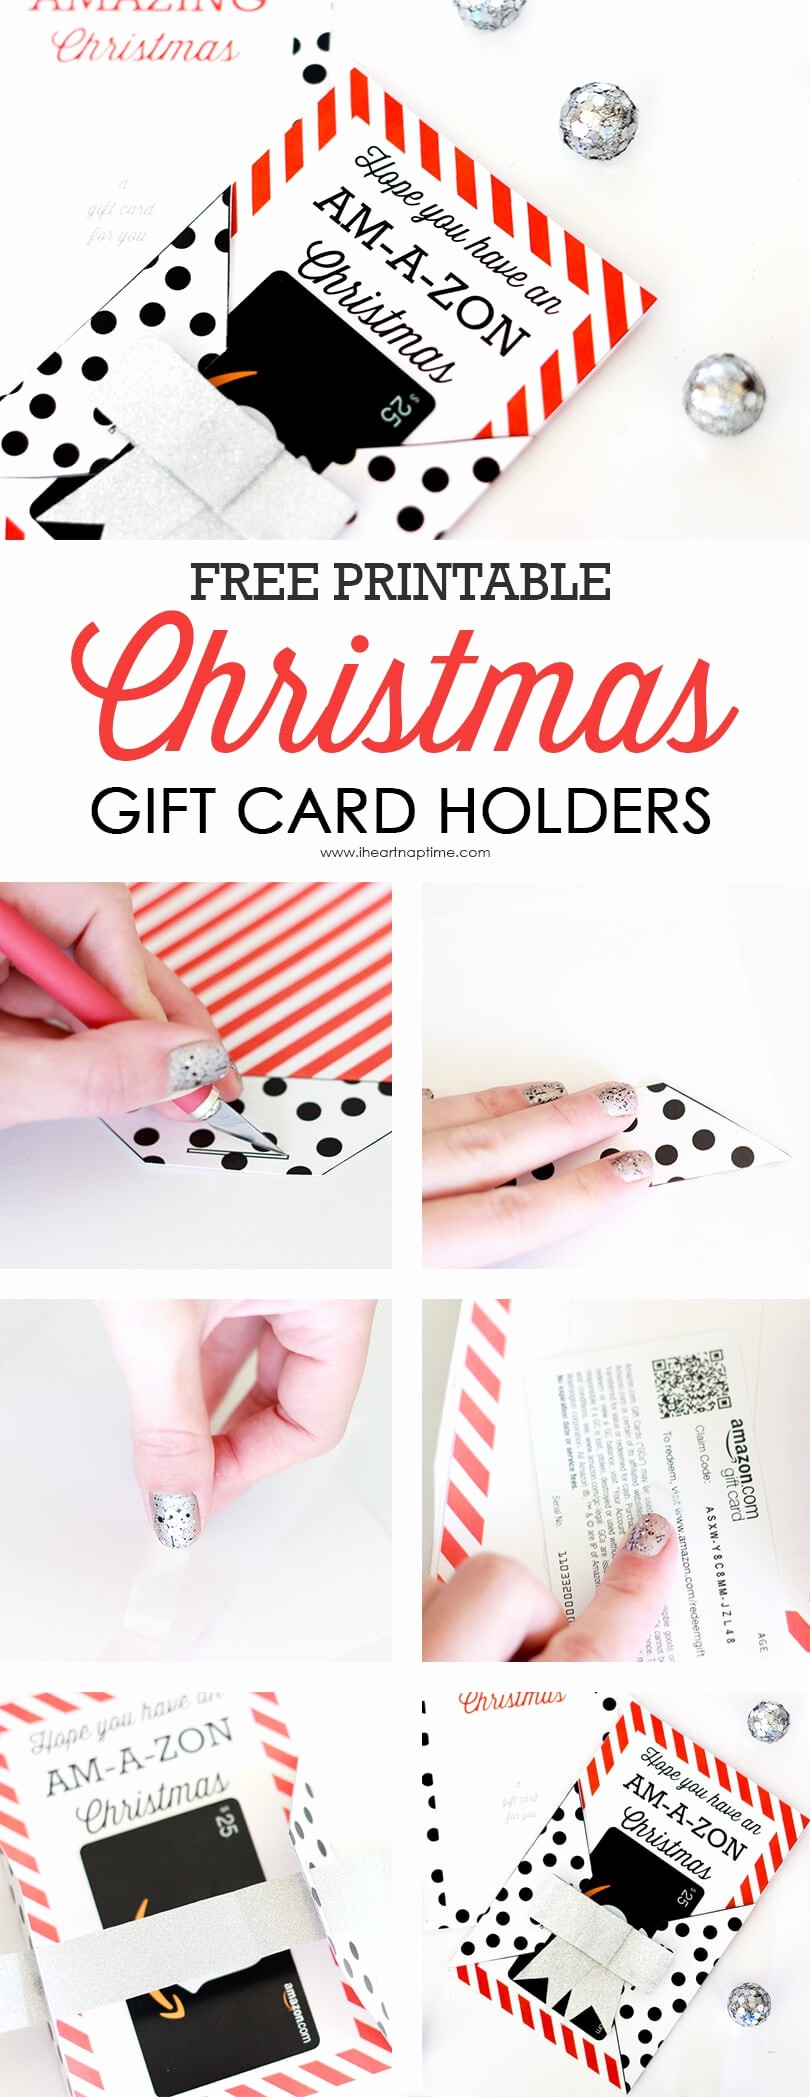 How to Make Gift Certificates Unique Free Printable Christmas Gift Card Holders I Heart Nap Time